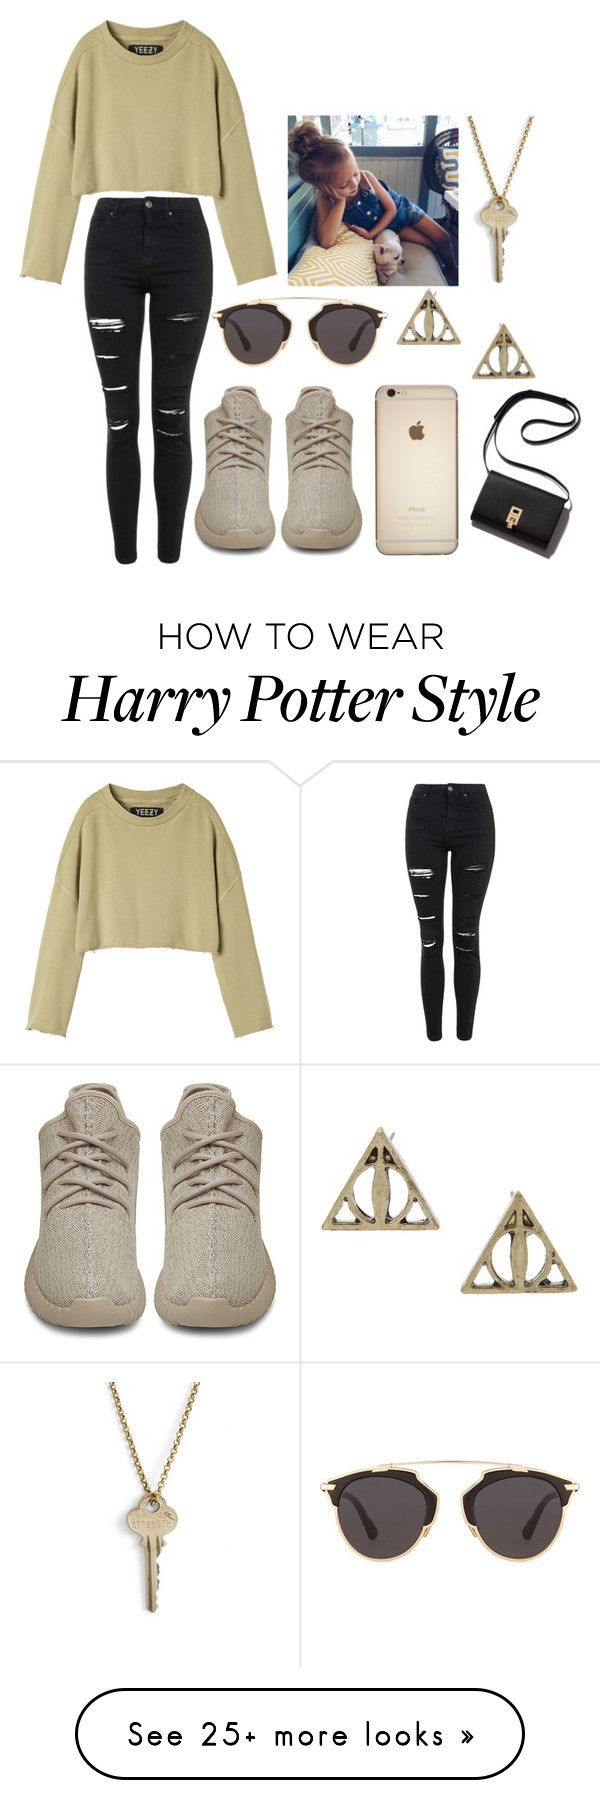 """""""wtih the baby"""" by caia-irwin on Polyvore featuring Topshop, adidas Originals, Christian Dior, The Giving Keys, women's clothing, women, female, woman, misses and juniors"""